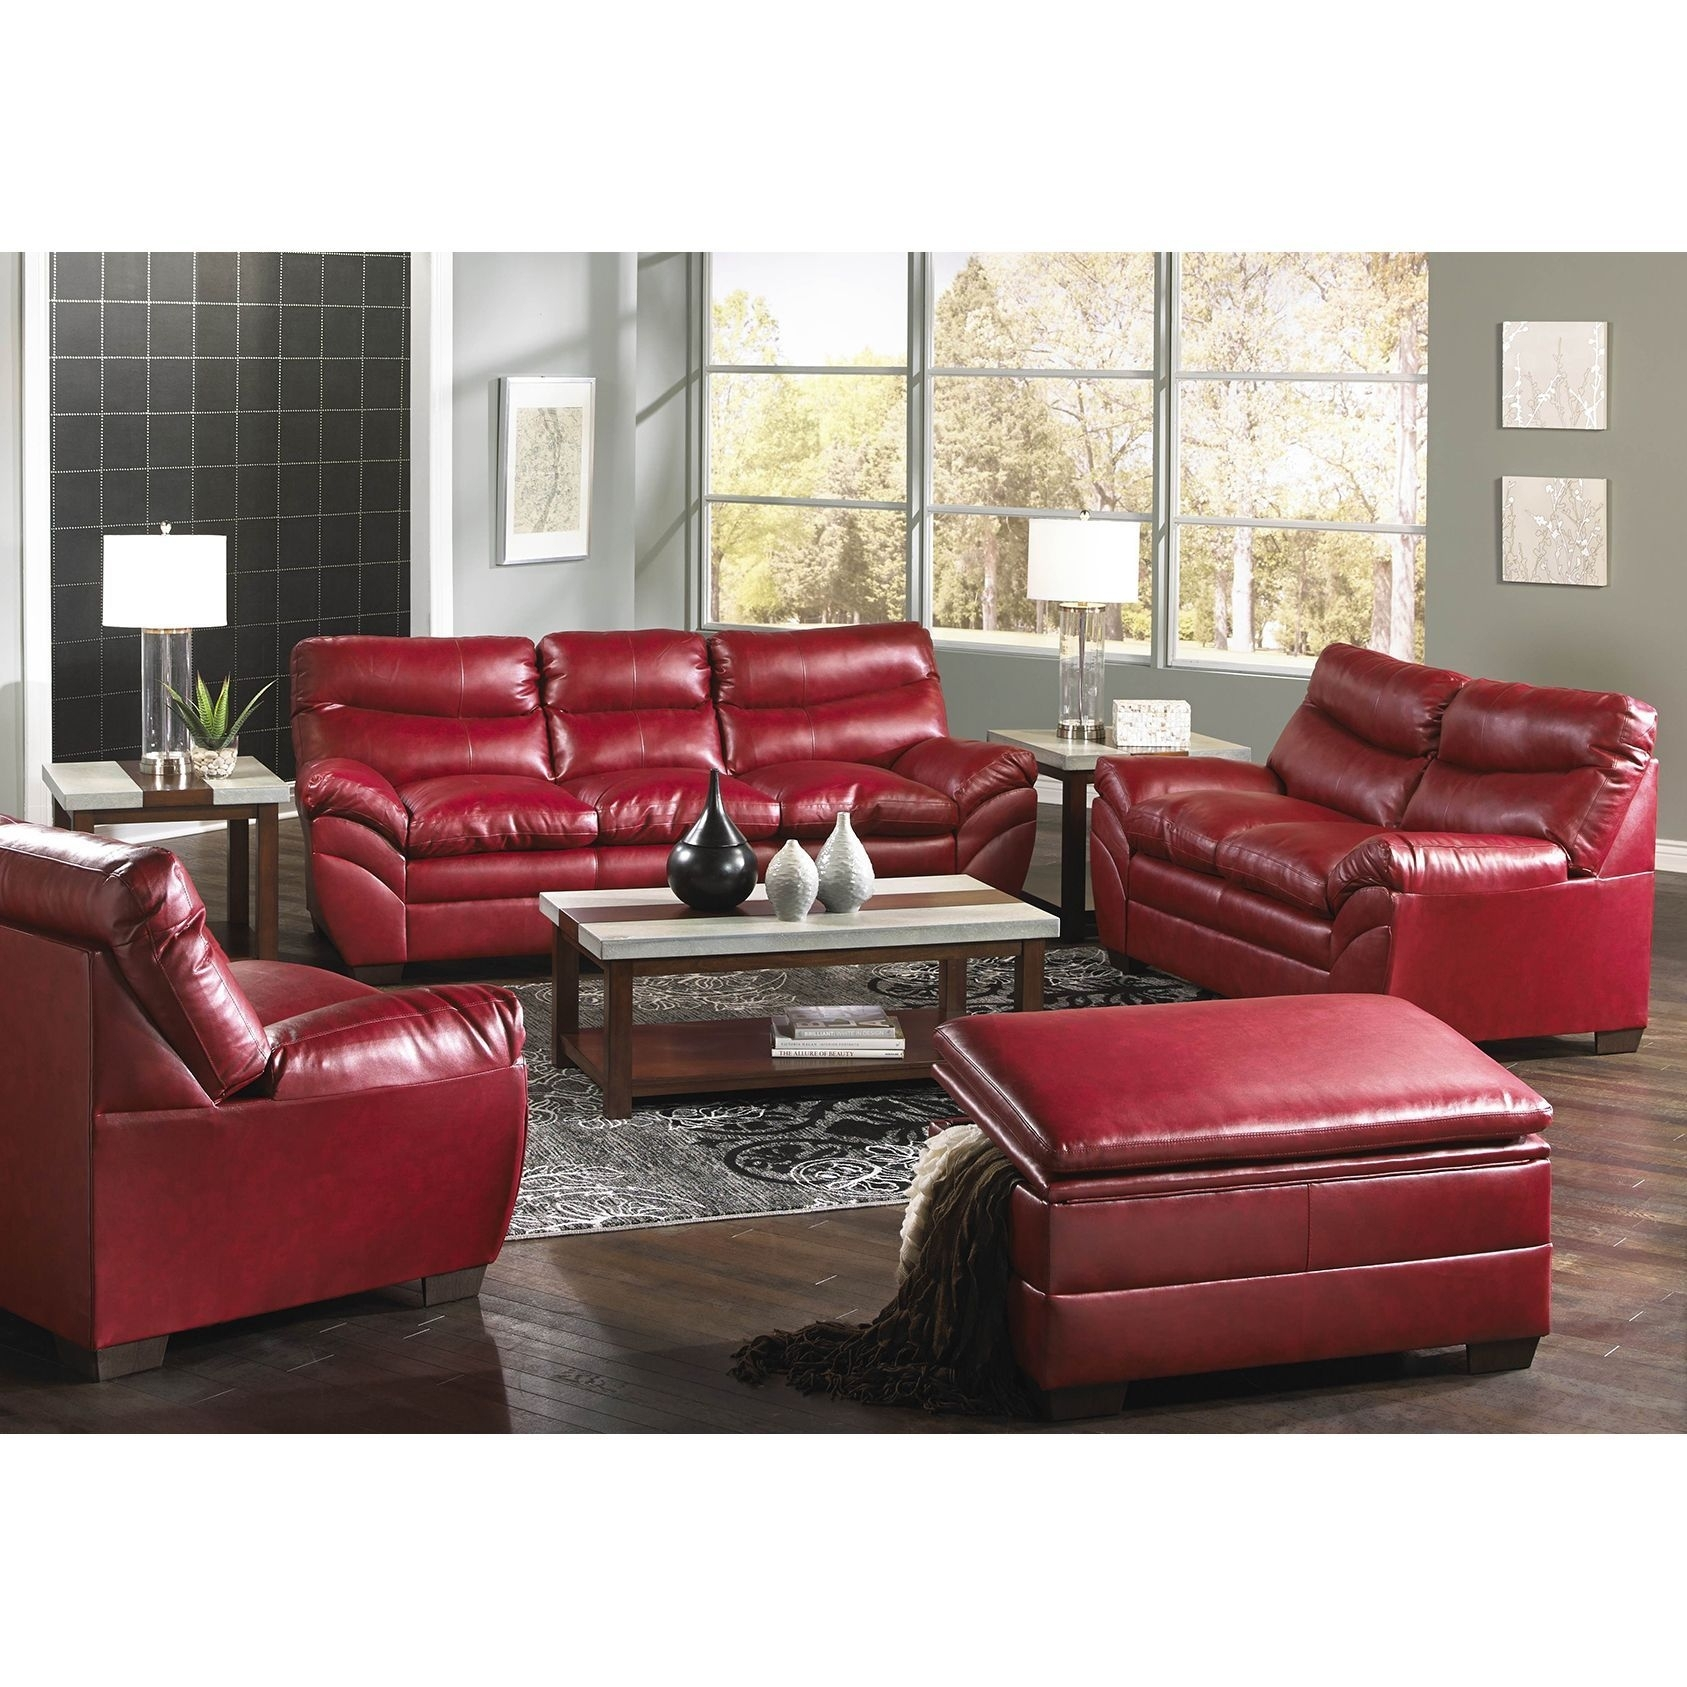 Add Bold Elegance To Your Home With This Gorgeous Love Seat. The with Tenny Cognac 2 Piece Right Facing Chaise Sectionals With 2 Headrest